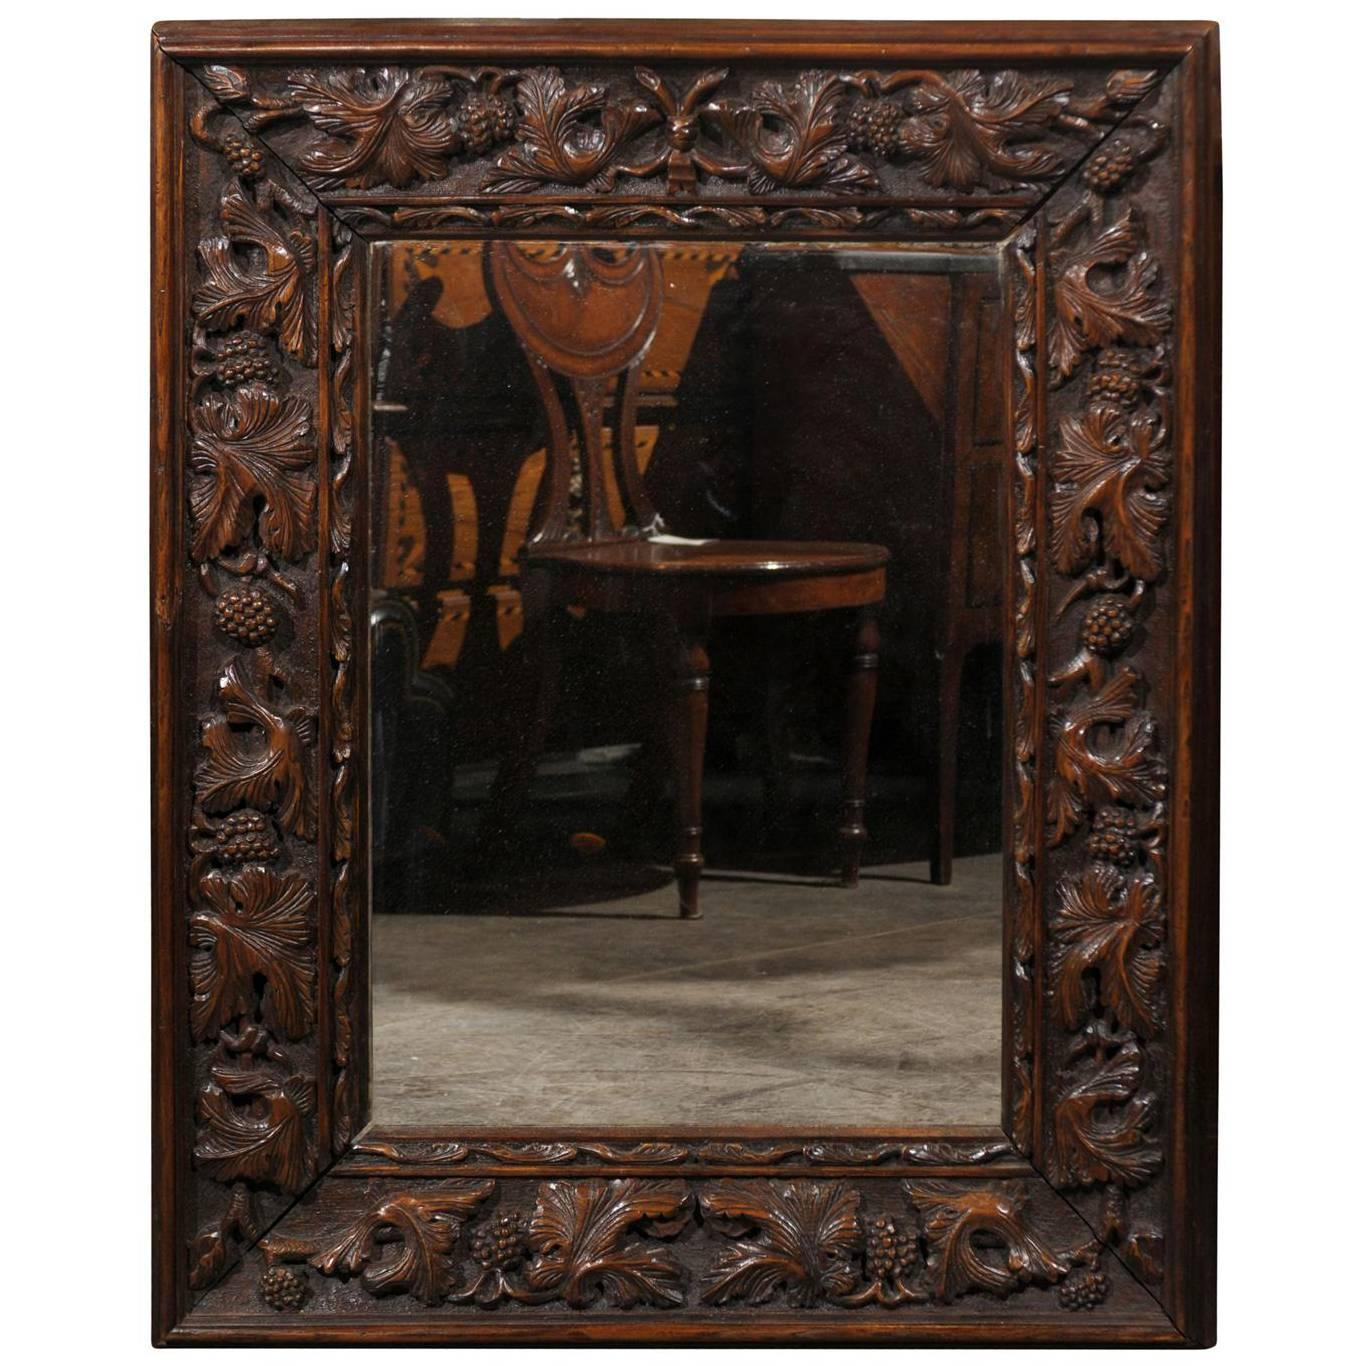 German wall mirrors 153 for sale at 1stdibs german black forest carved mirror with foliage motifs from the late 19th century amipublicfo Images